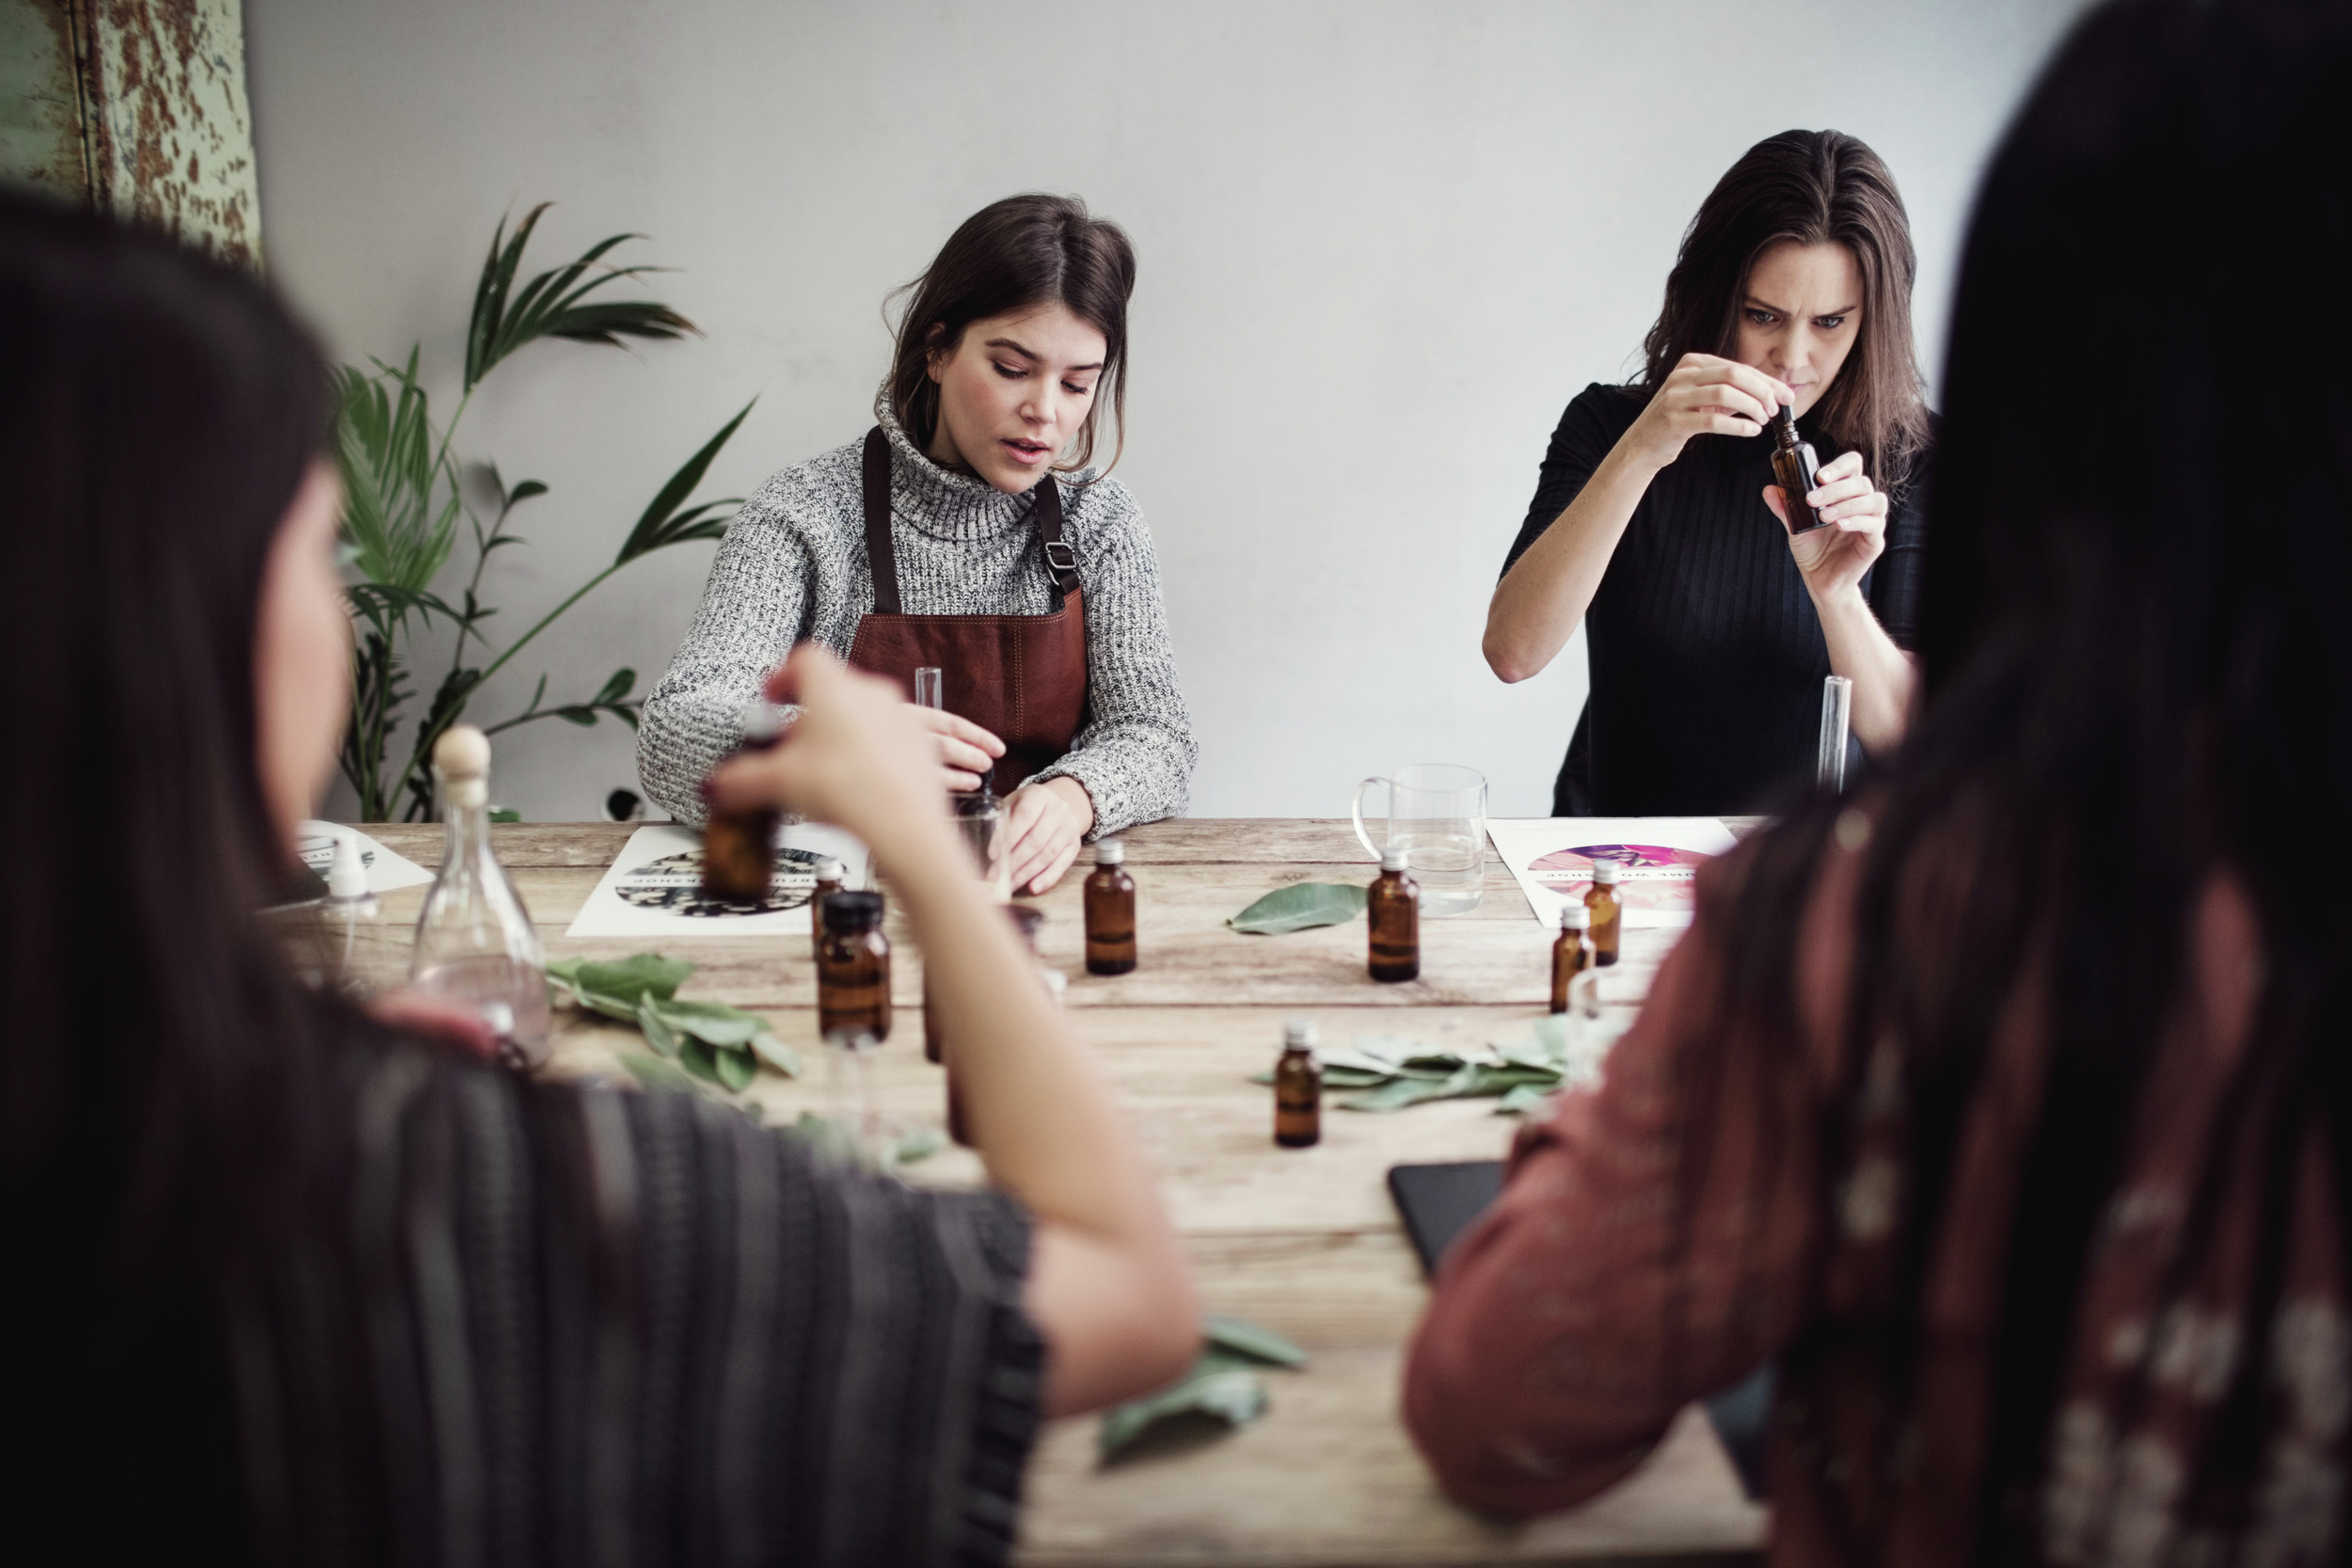 Be Smart.Be Social. - Join other high-level women to learn, grow, and connect through curated, experiential lifestyle classes.